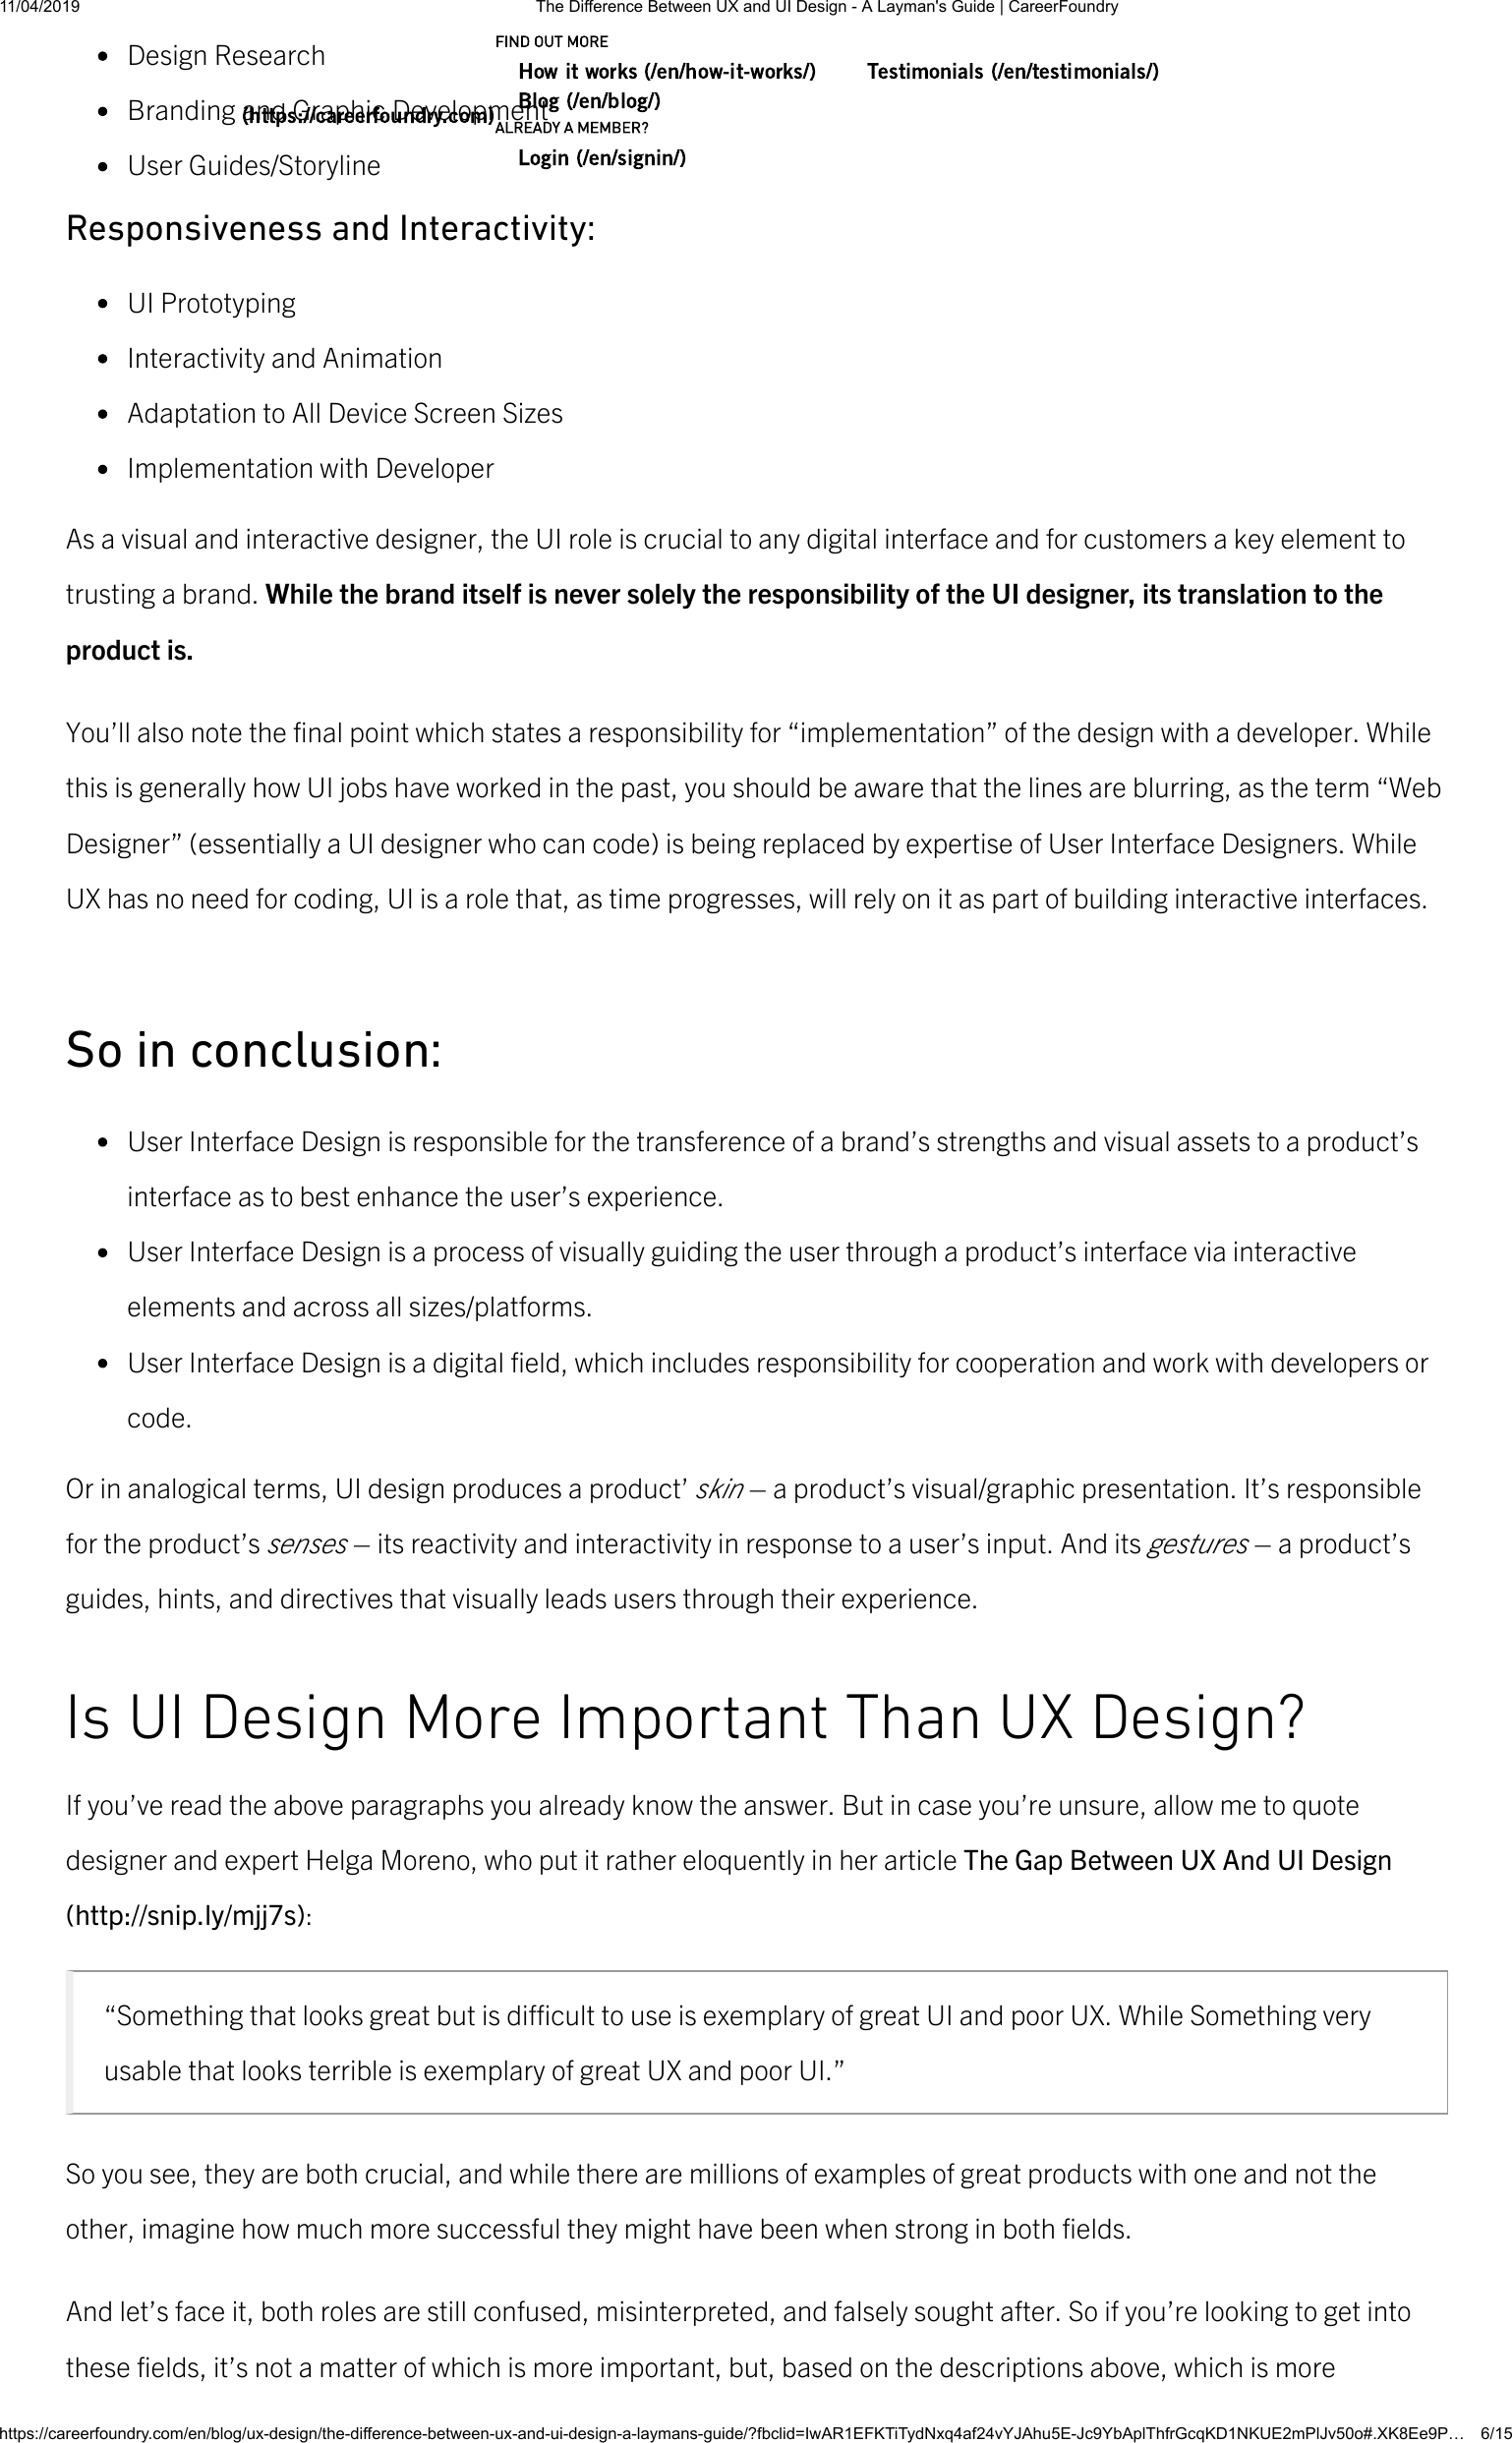 The Difference Between UX And UI Design A Layman's Guide